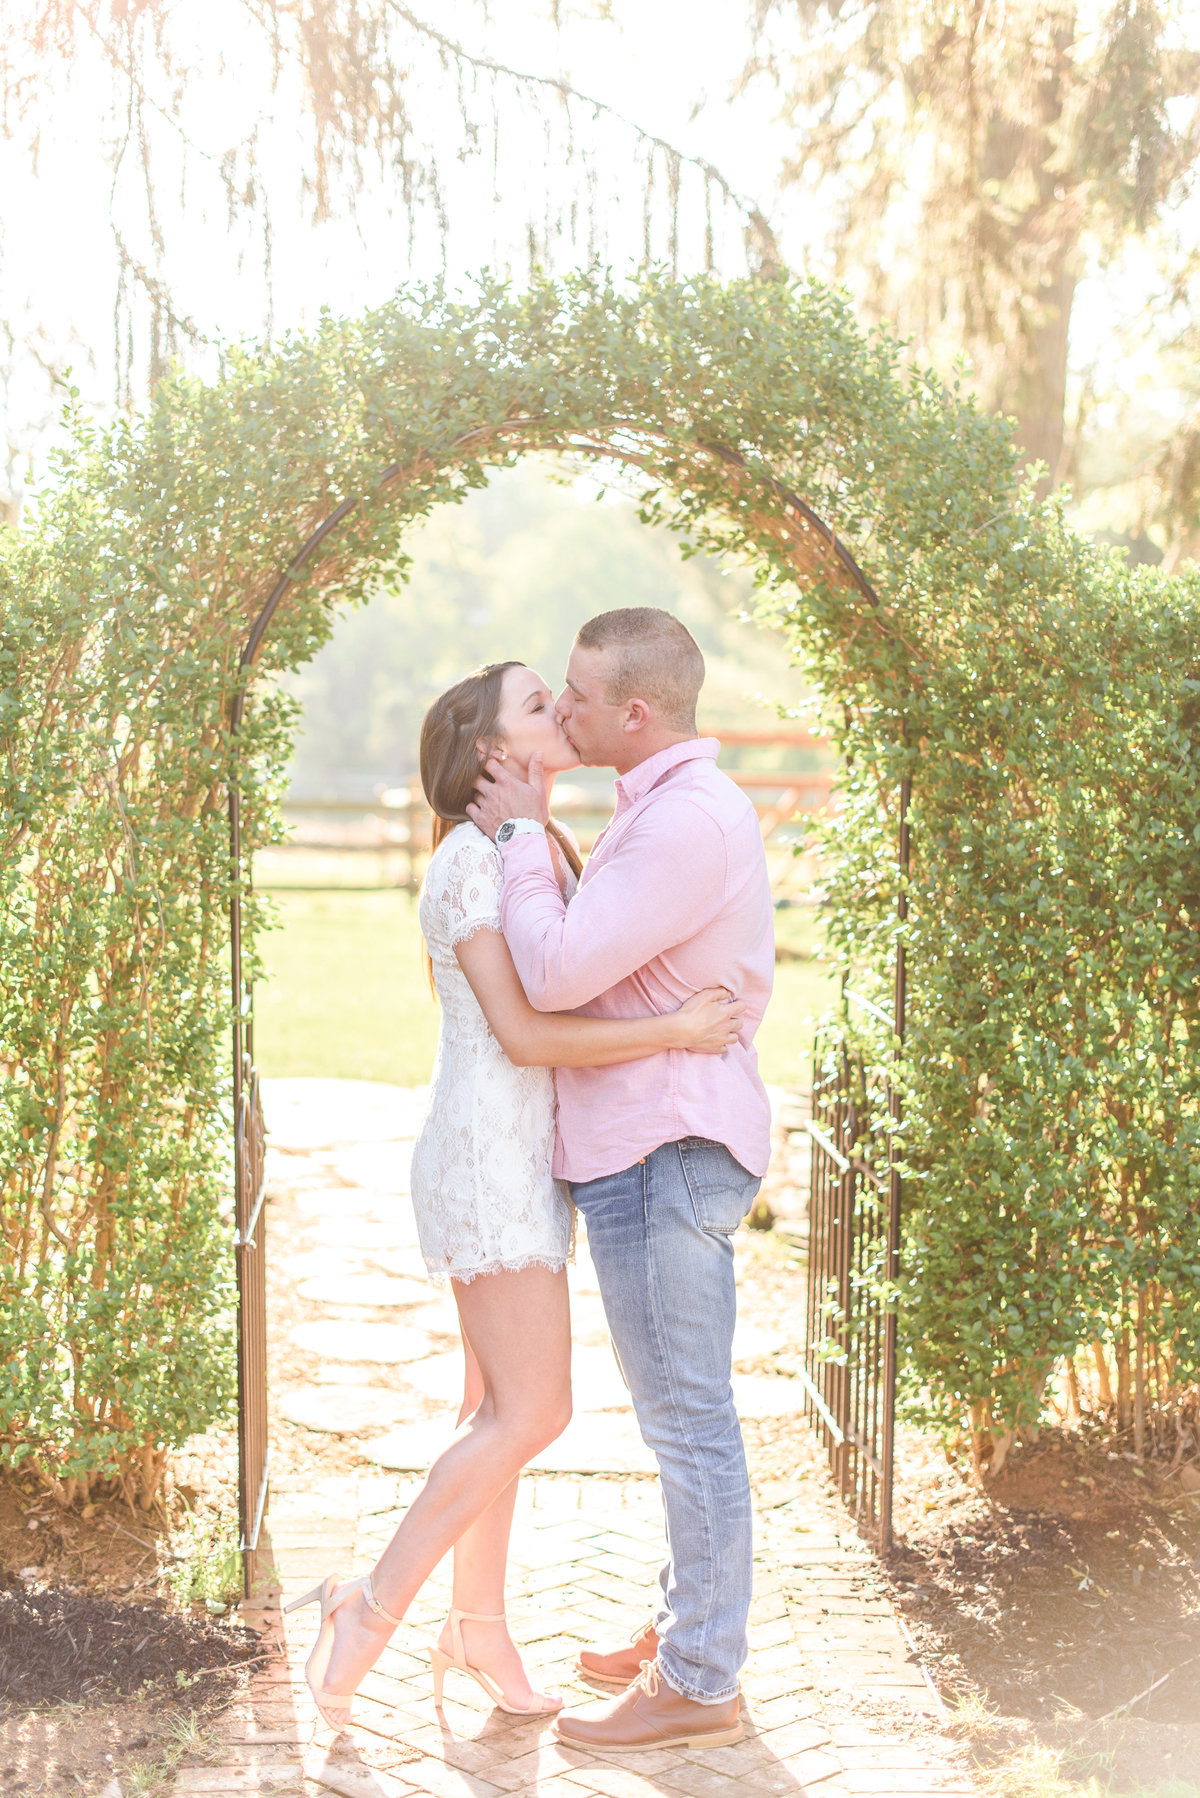 Olivia & Cody_ White Chimney's Engagement session_ Olivia Rae Photography-37